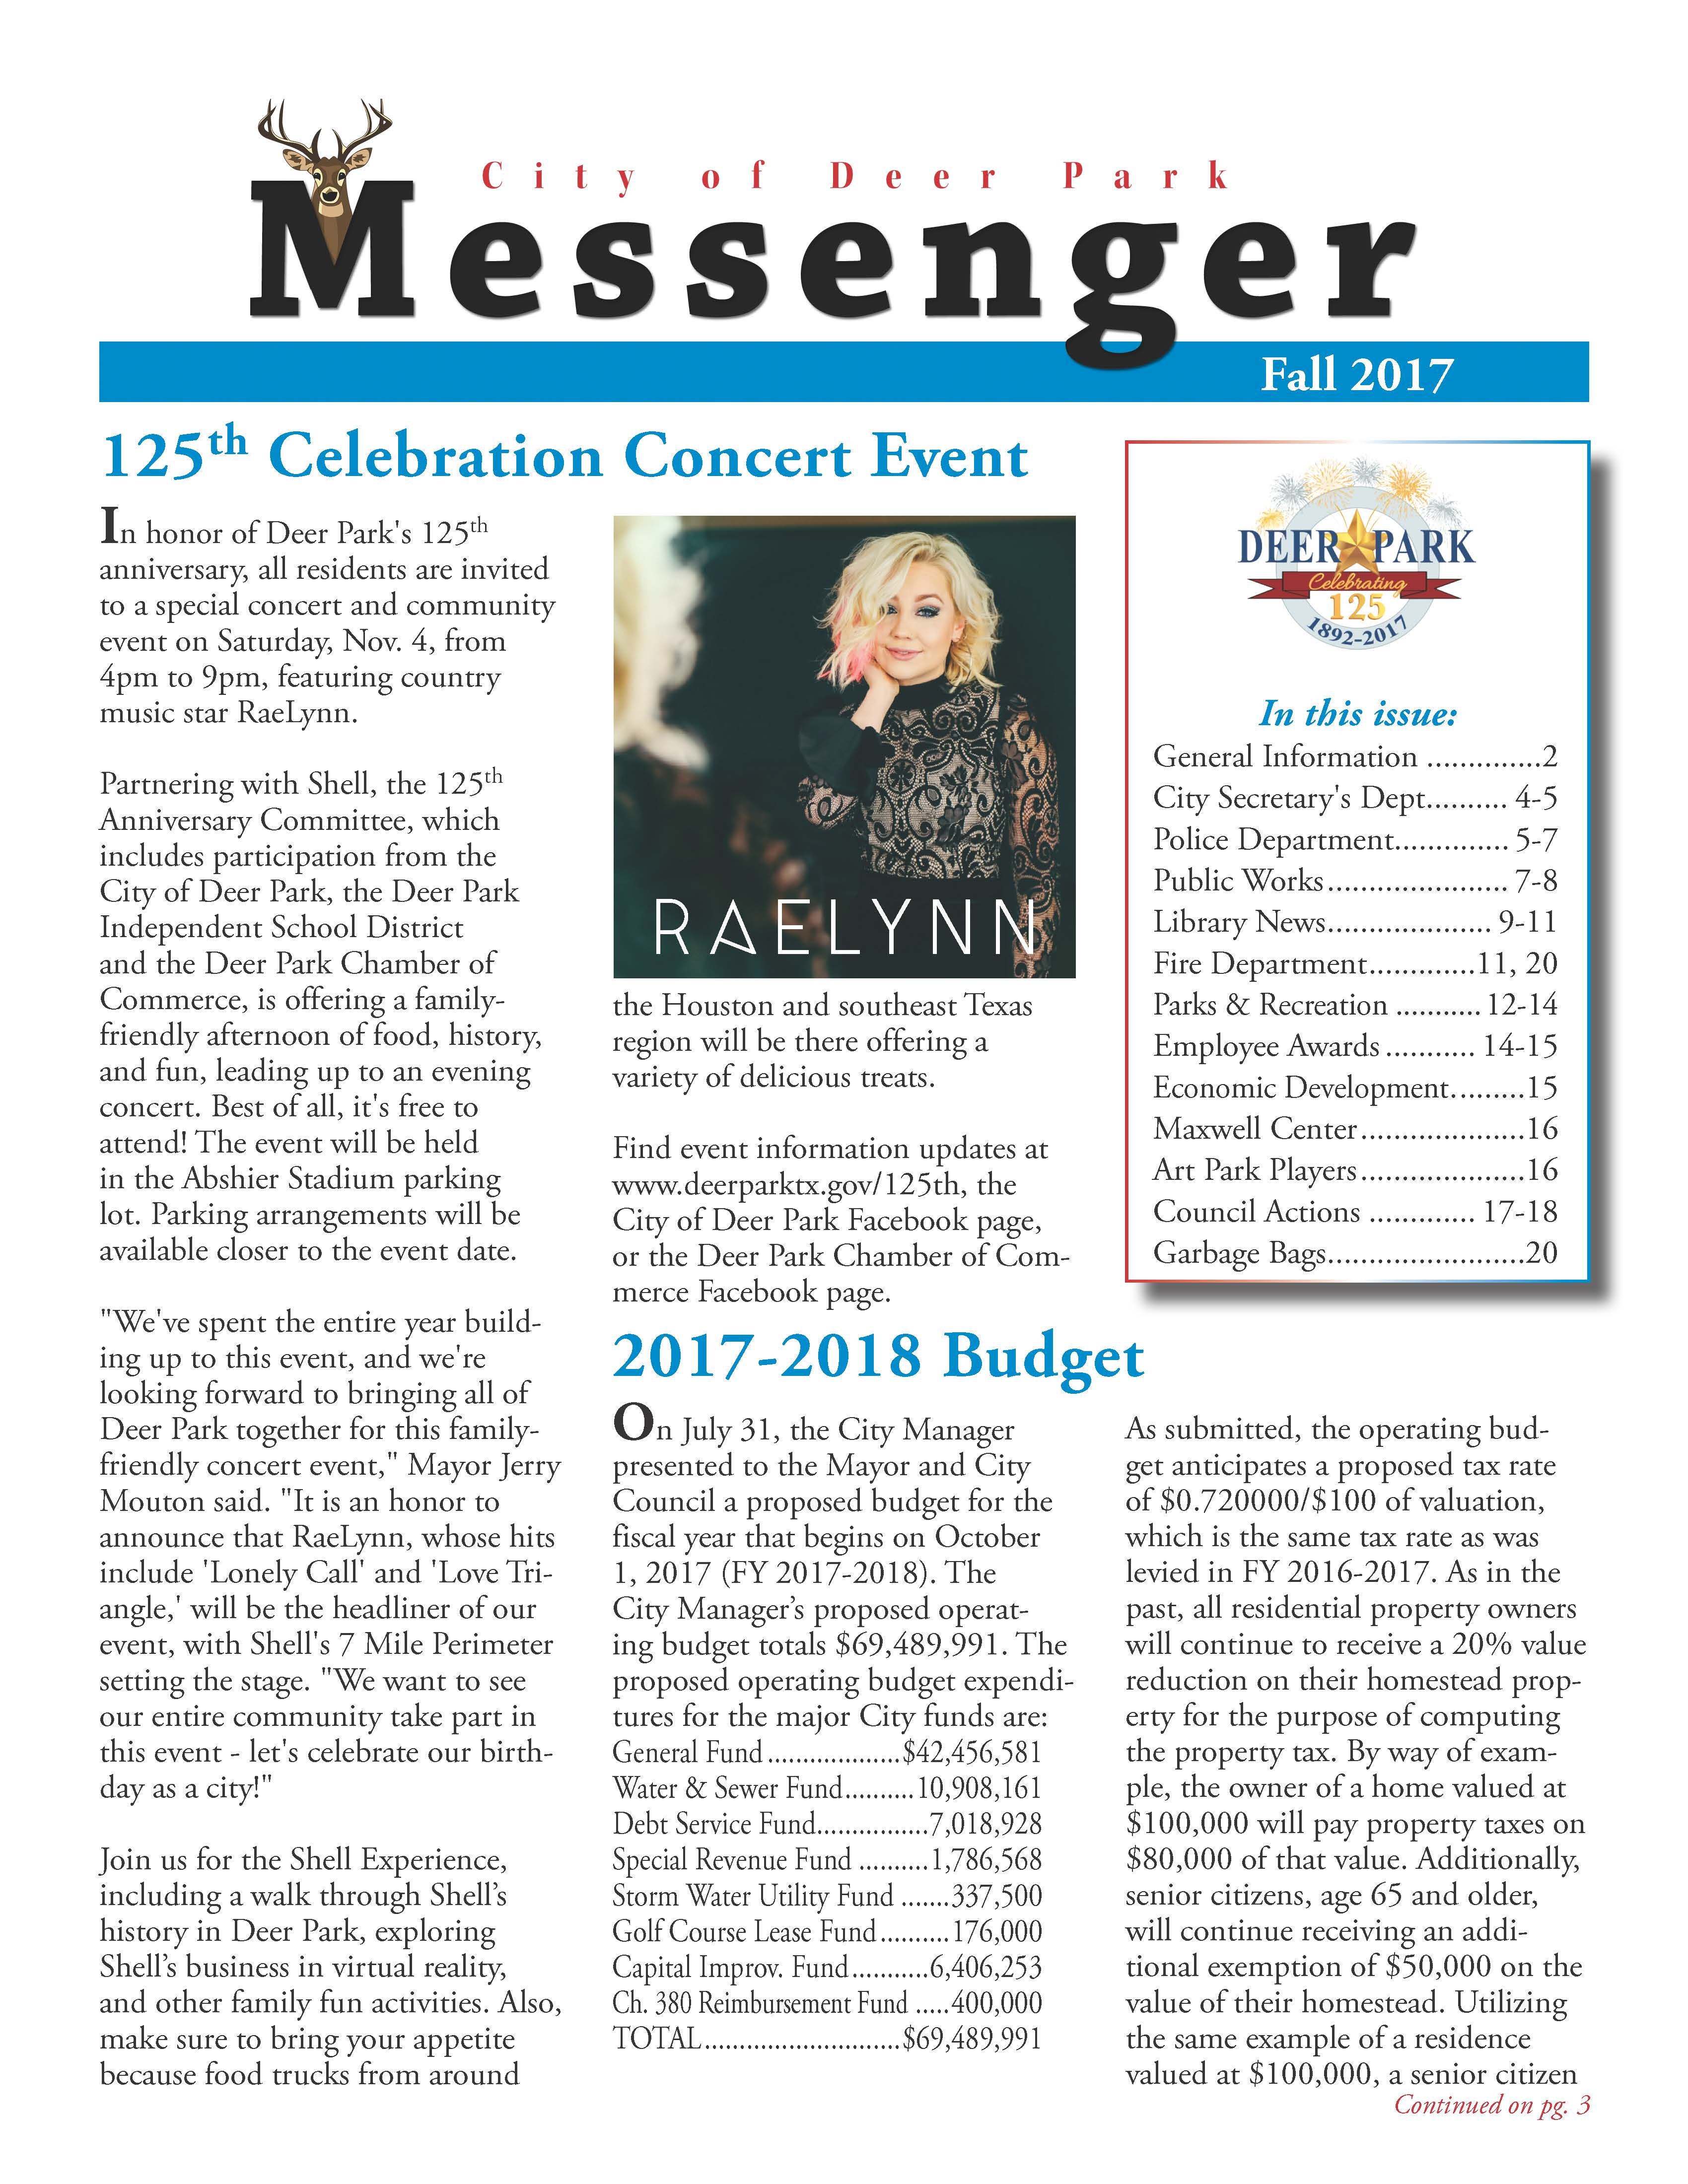 Fall 2017 Messenger_cover.jpg